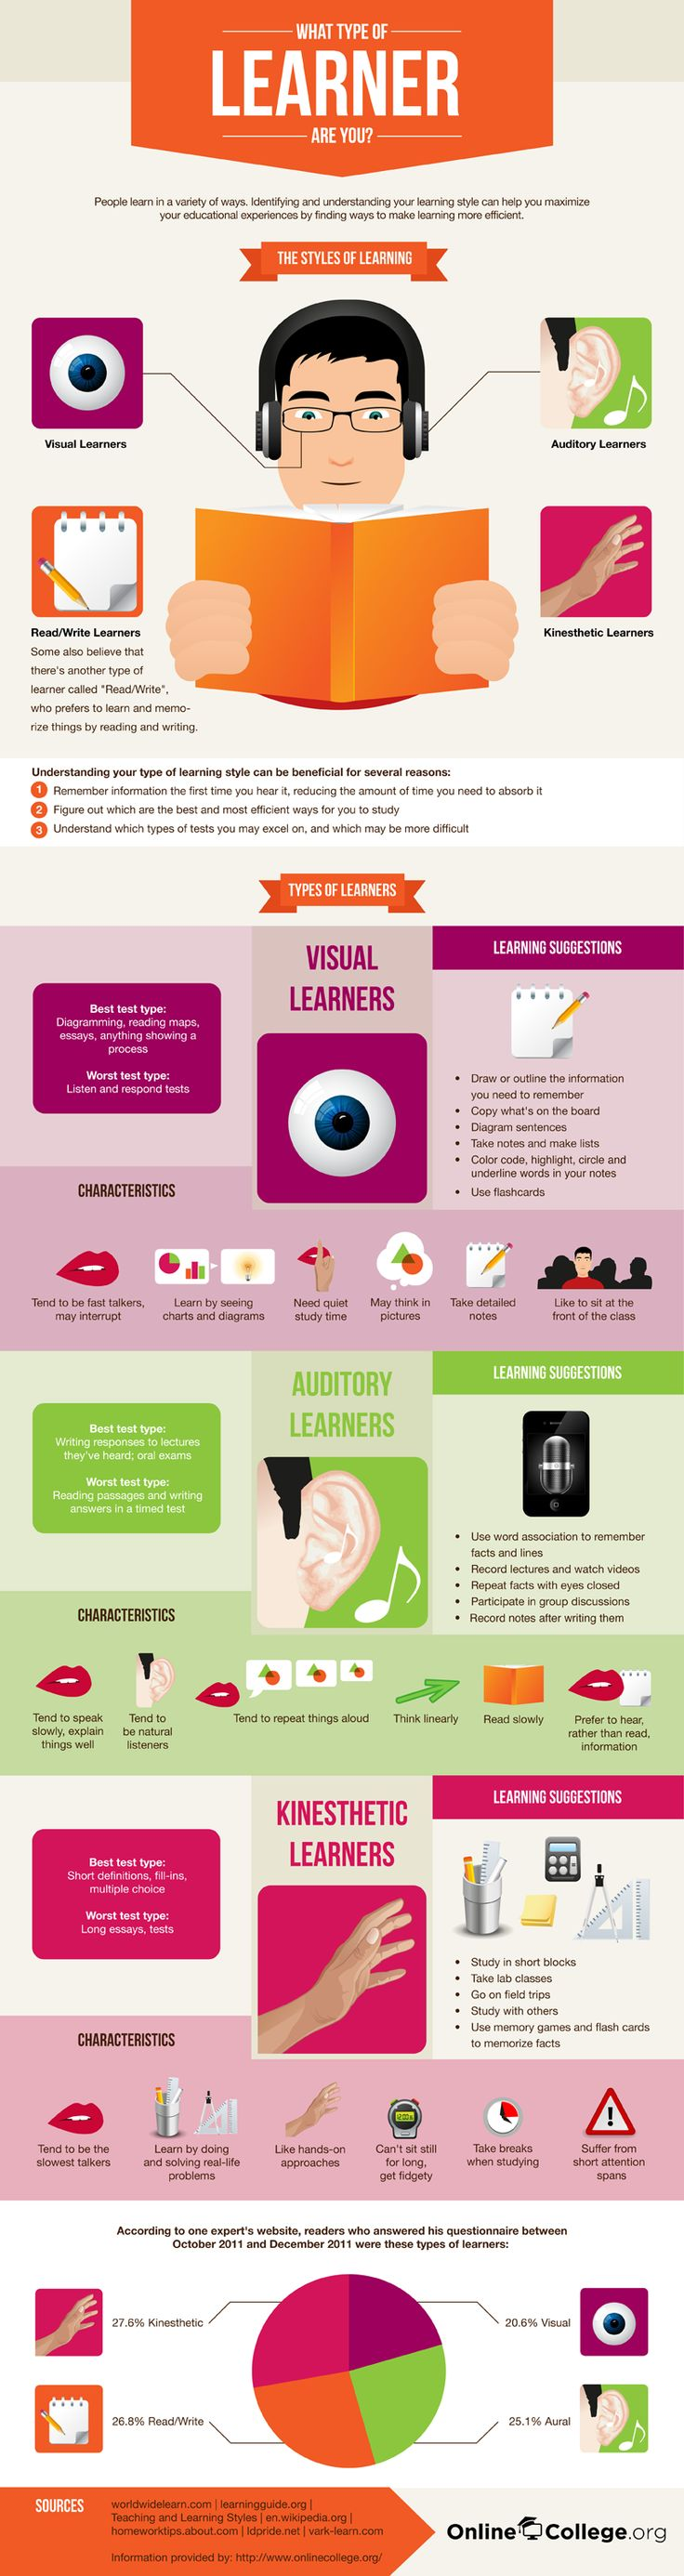 What type of learner are you? Take a look at this handy sheet Repinned by www.movinghelpcenter.com Follow us on Facebook! #moving